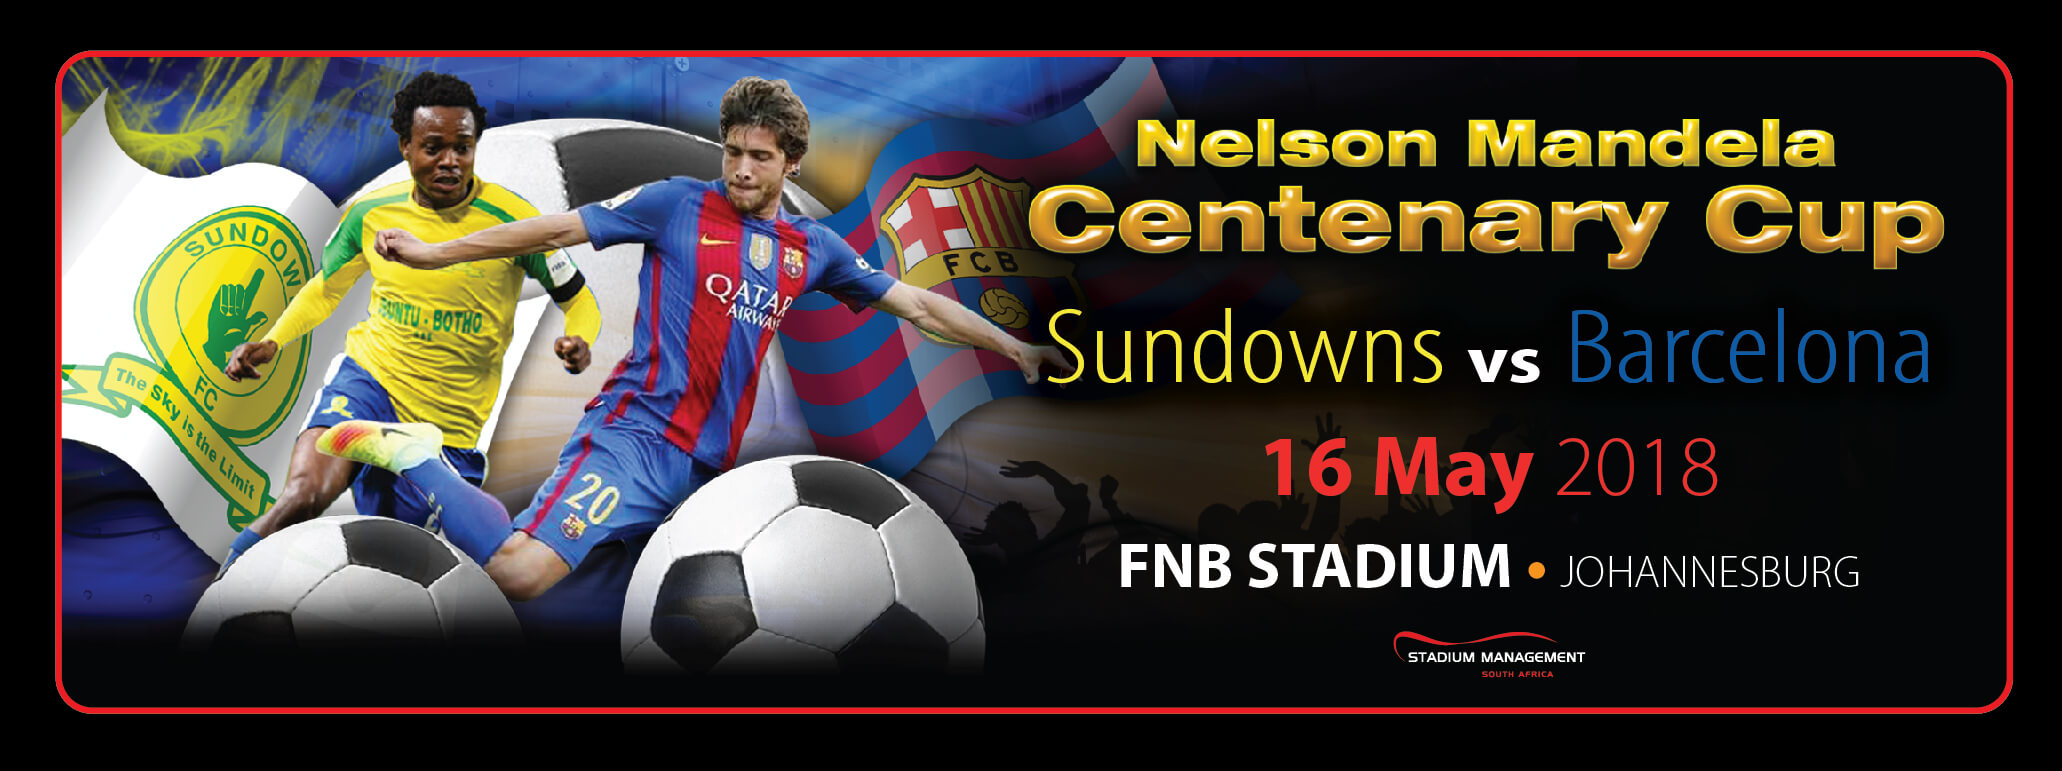 a9394afc1 Can you believe it – the champions of South Africa against the champions of  Spain  The PSL issued a statement confirming that Mamelodi Sundowns vs  Barcelona ...